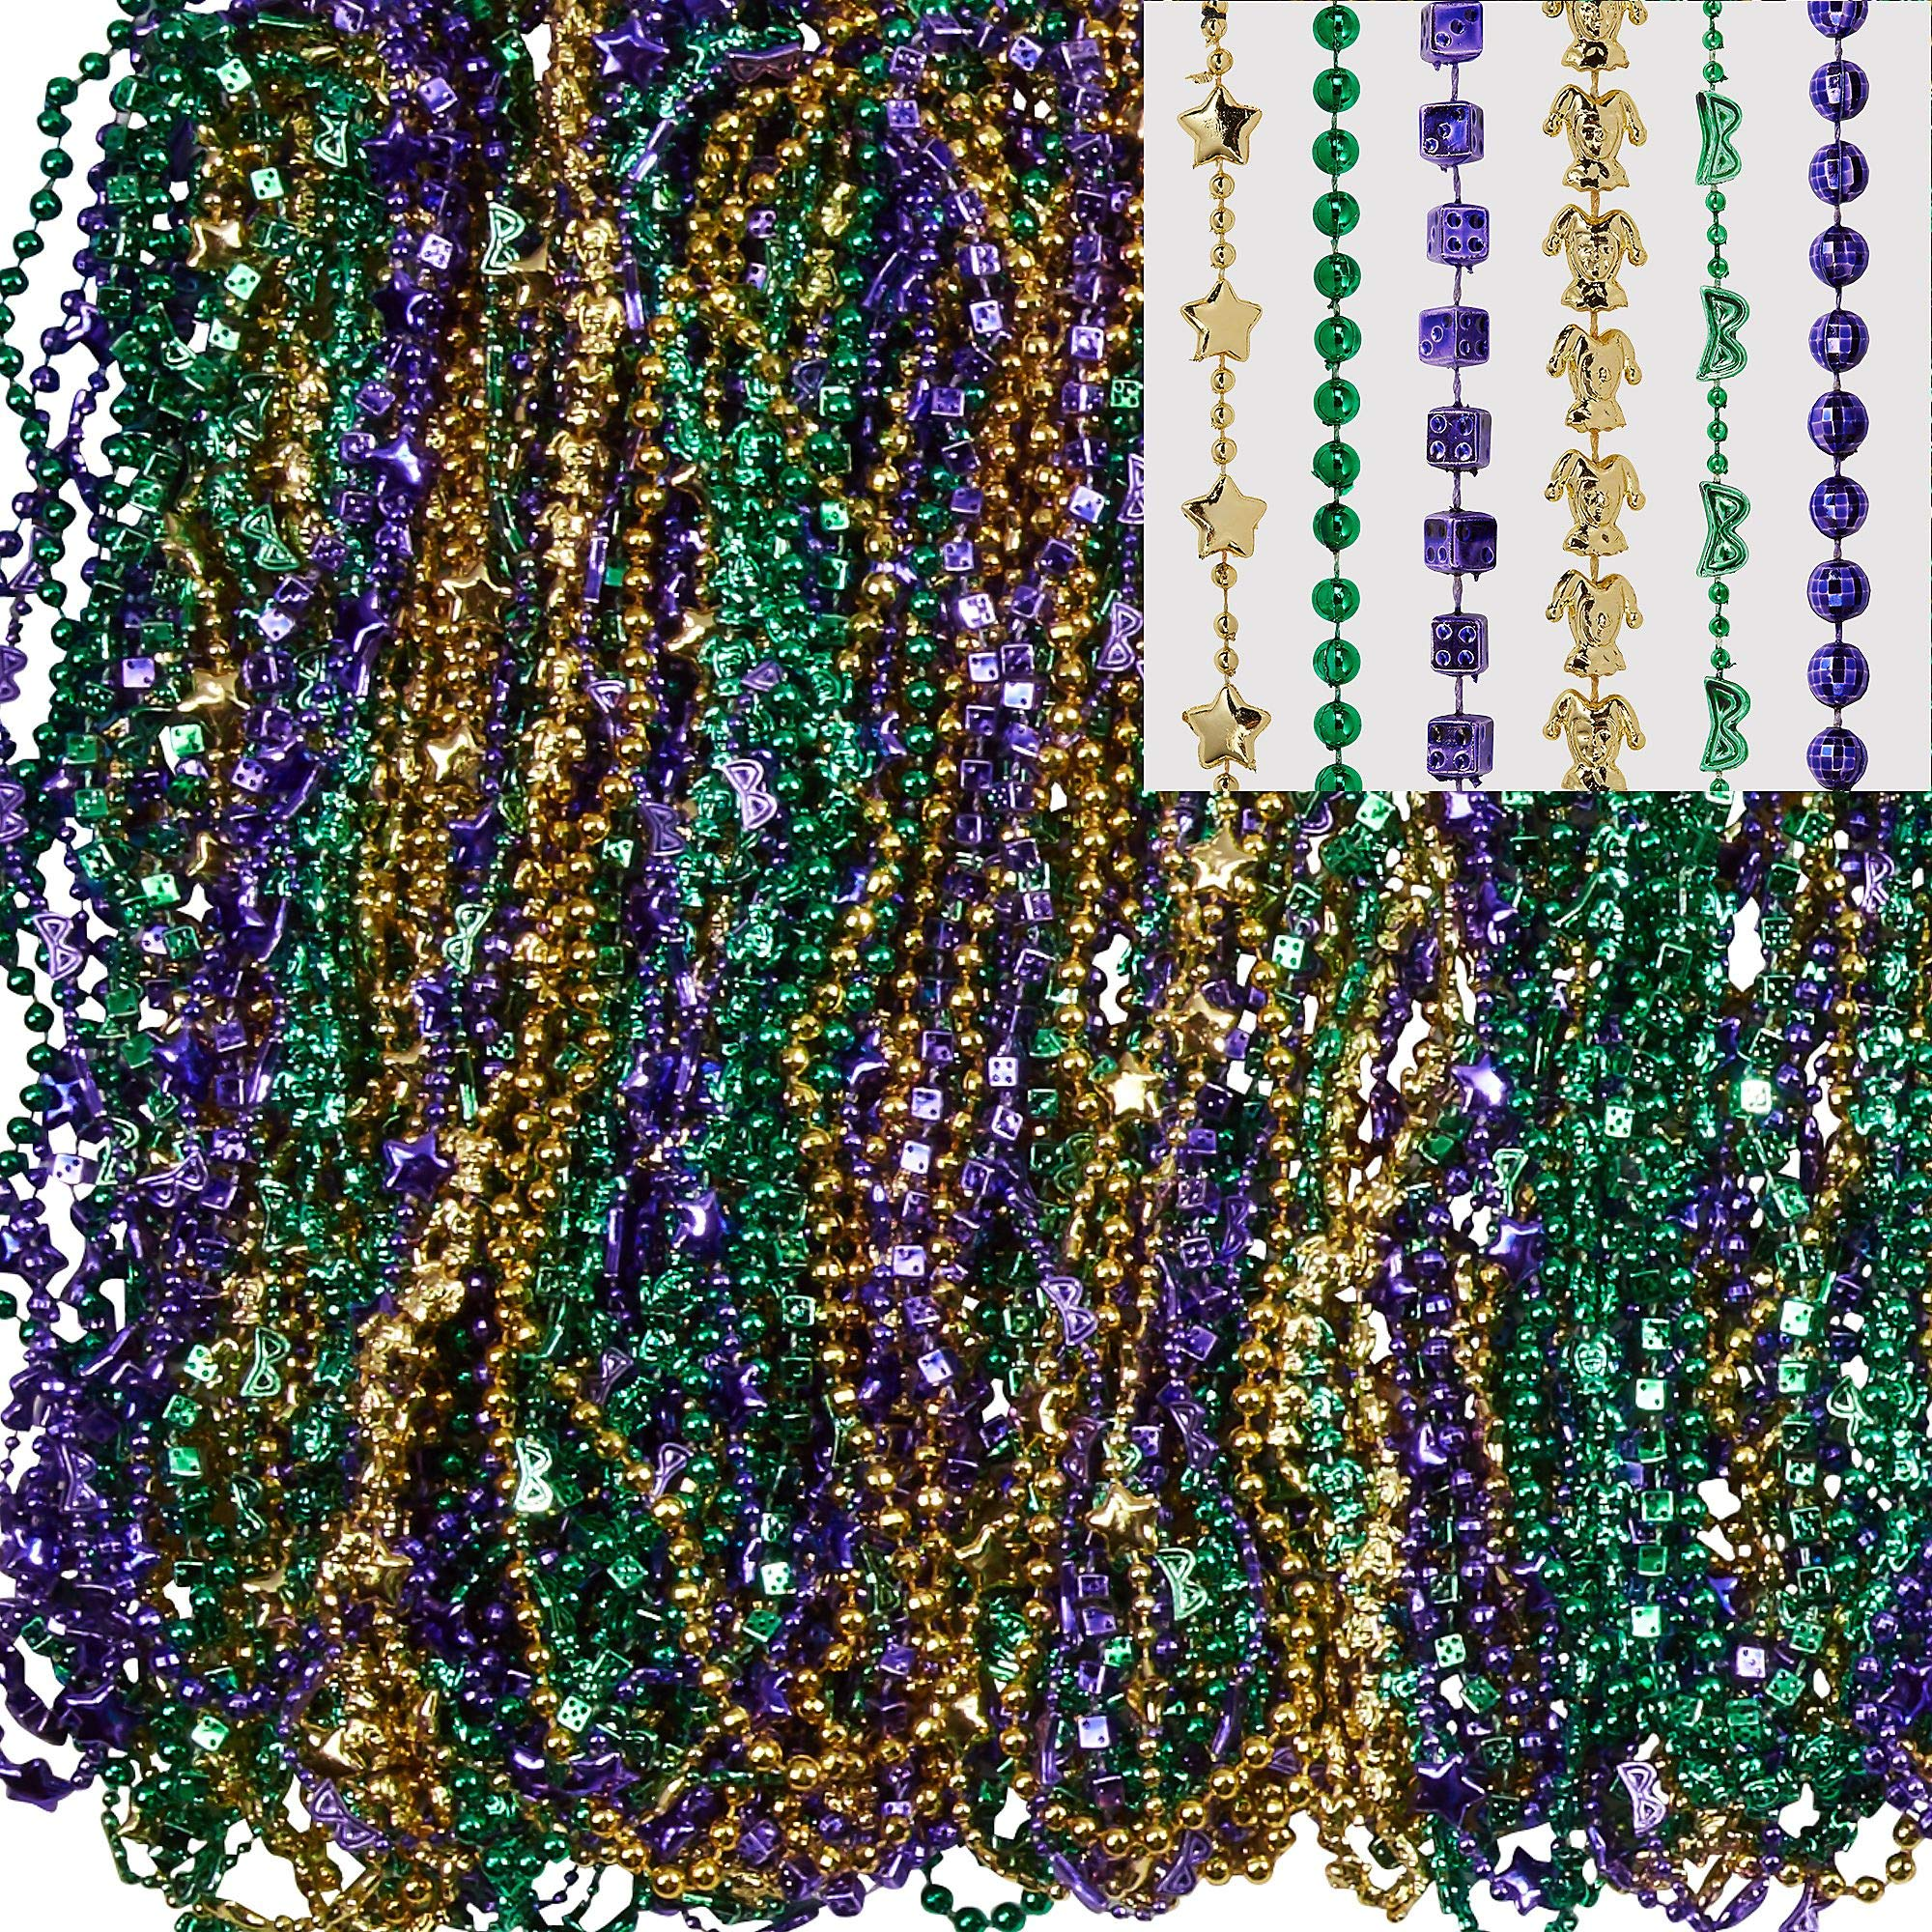 Amscan Mardi Gras Bead Necklaces, Carnival Party Supplies, 3 Assorted Colors, 30'' L, 576 Count by amscan (Image #1)